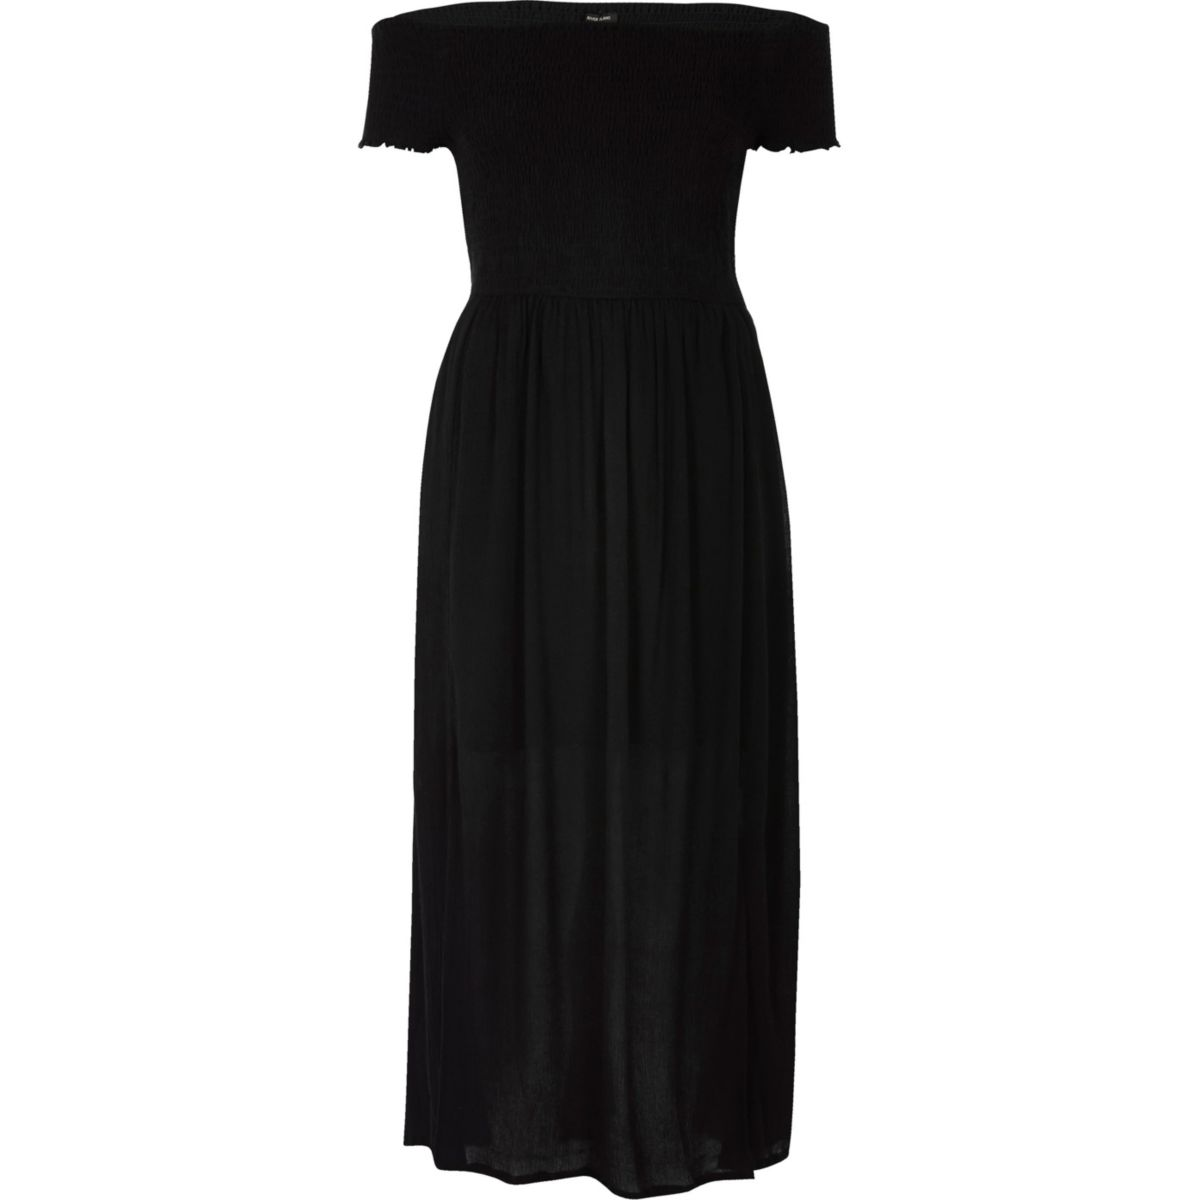 Black shirred bardot maxi dress